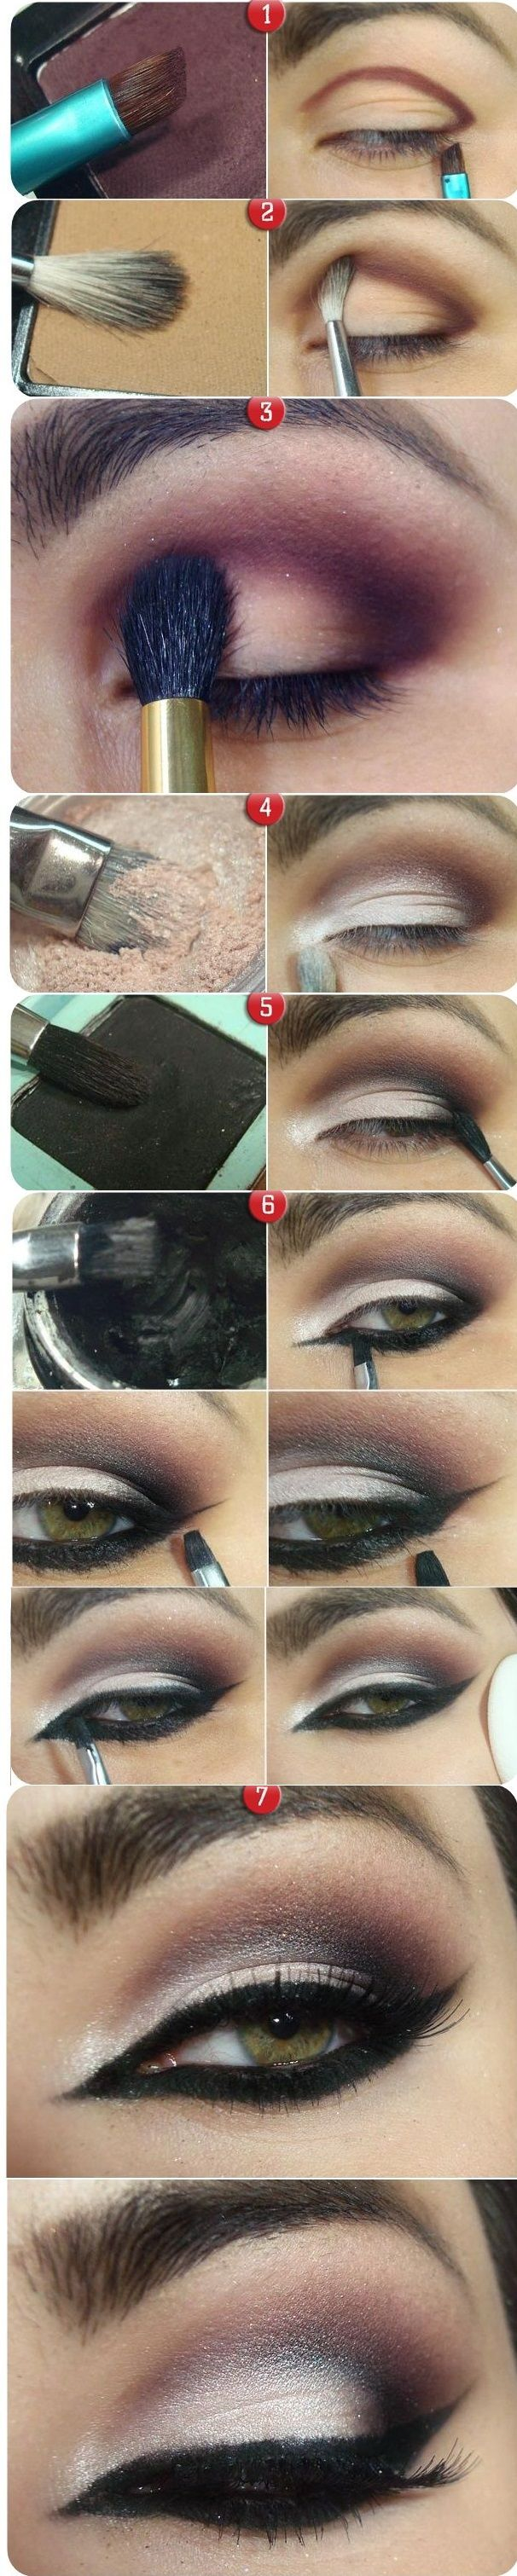 Egyptian Makeup Tutorial